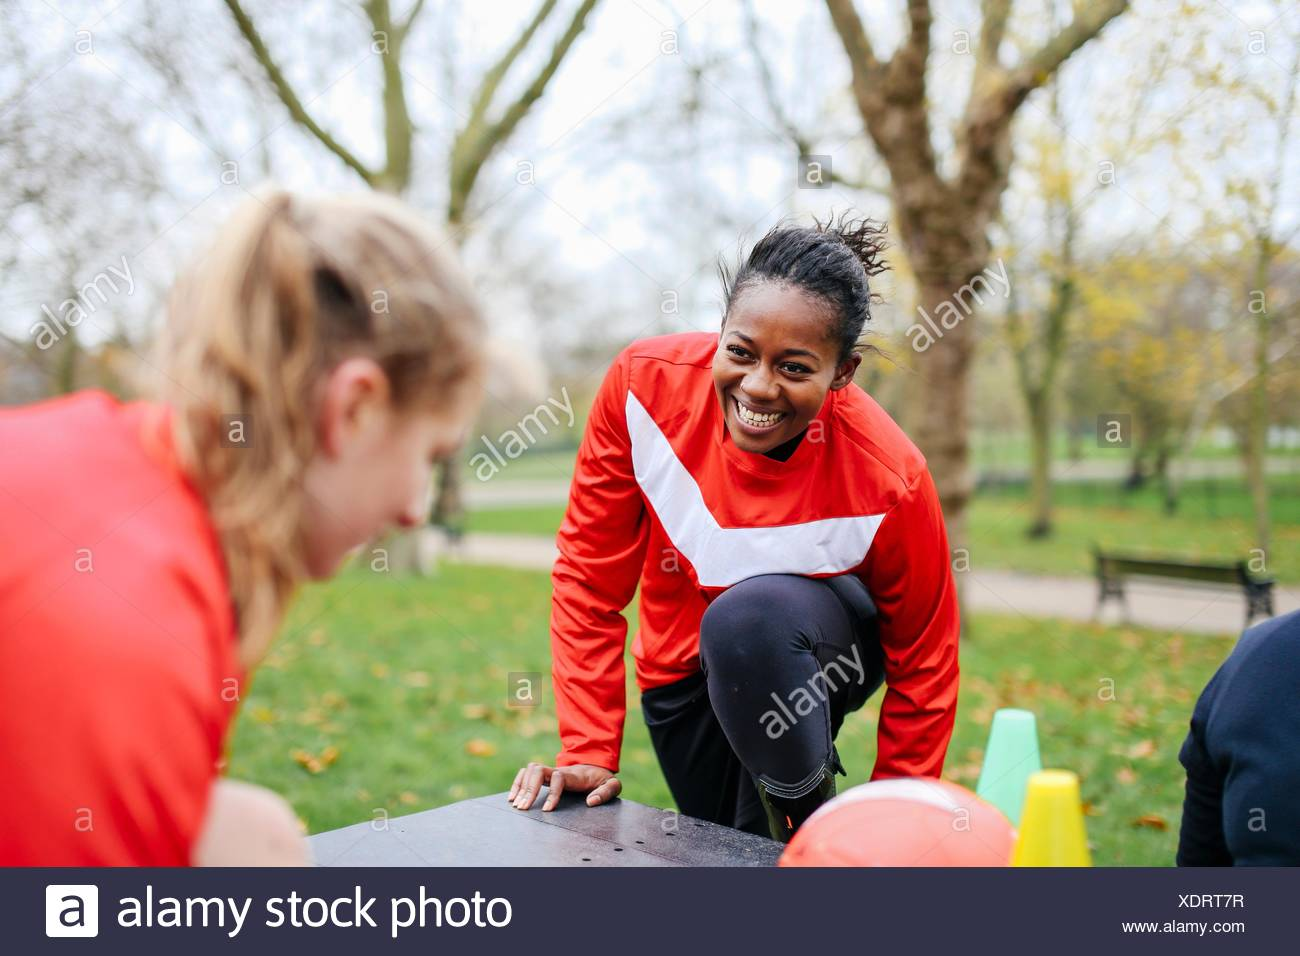 Adult female soccer players preparing to play soccer in park - Stock Image